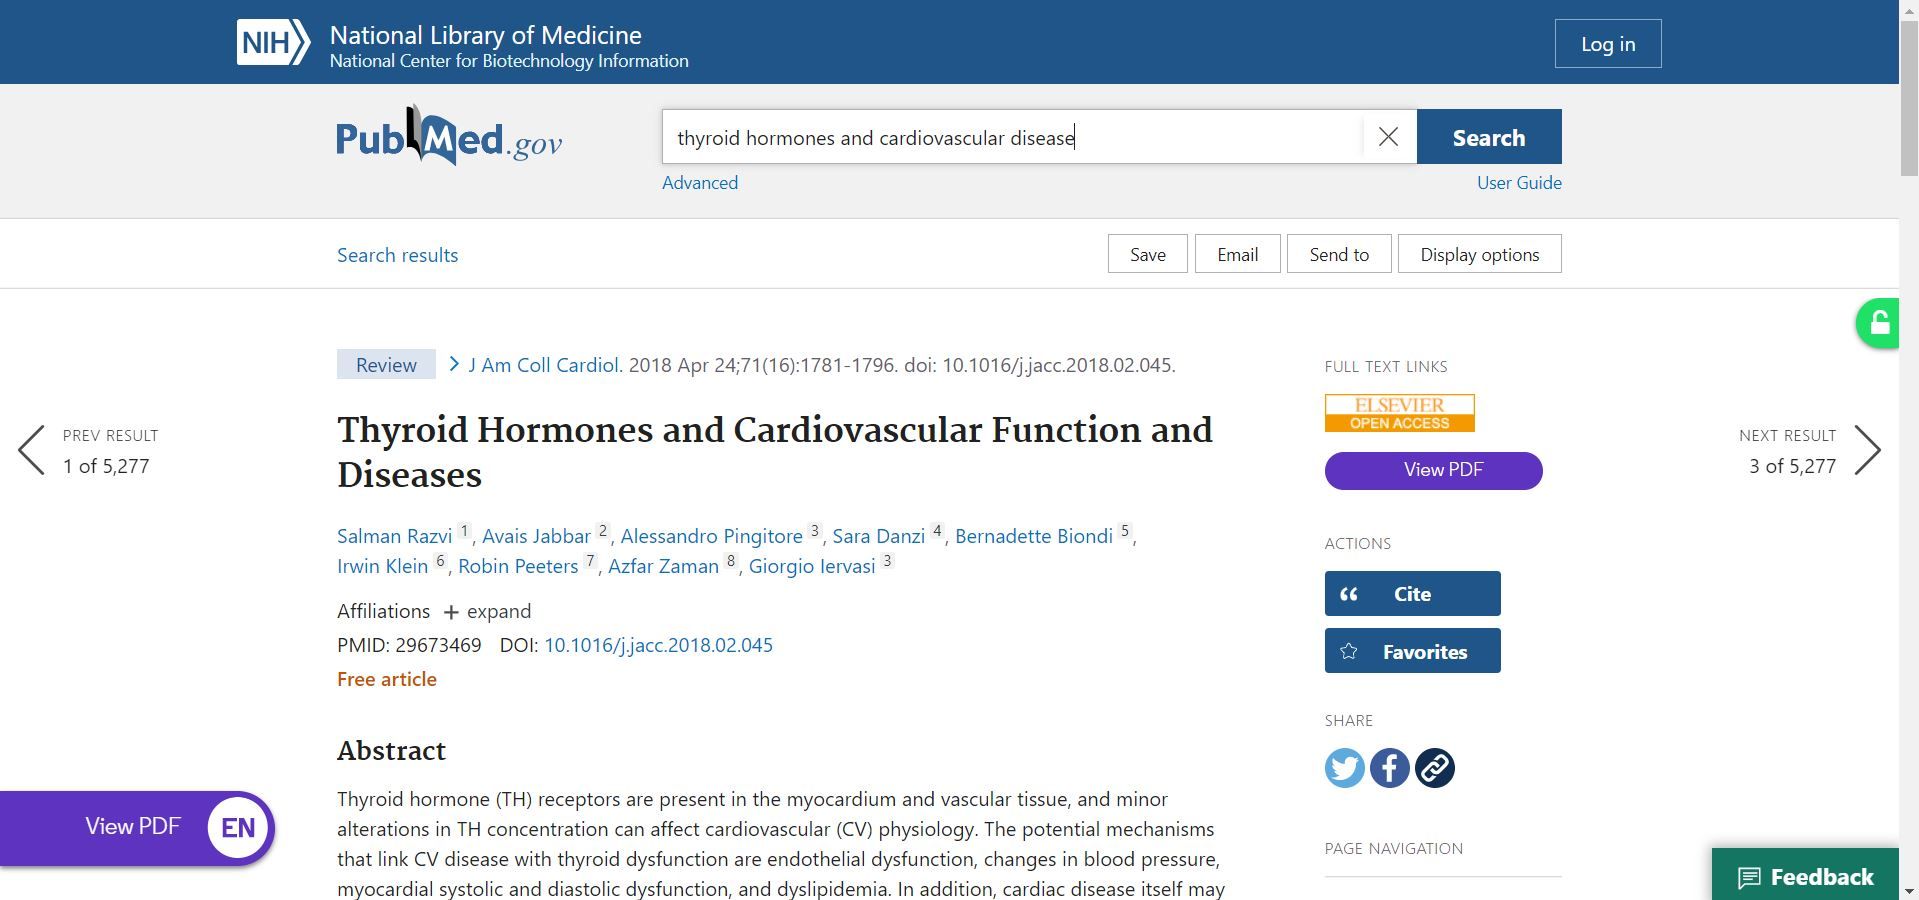 EndNote Click displaying access to full text article on PubMed